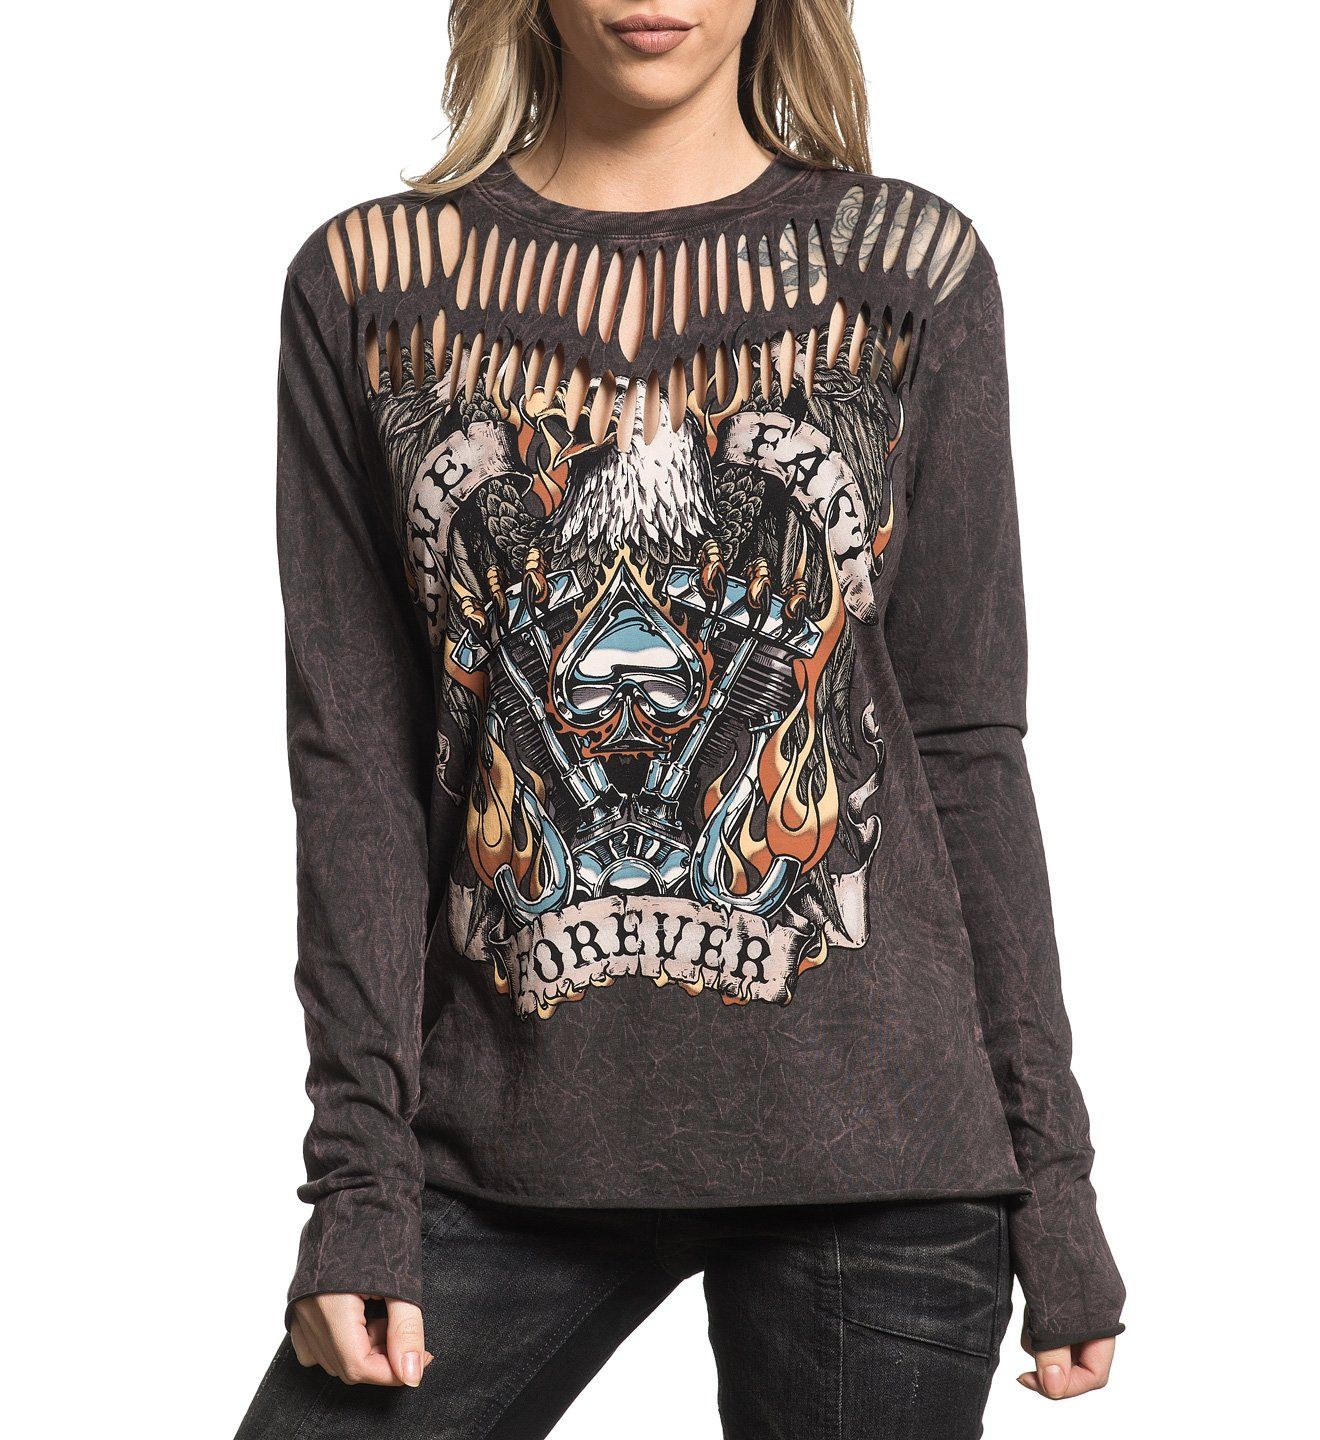 04c7b4a6 Live Fast Forever - Womens Long Sleeve Tees - Affliction Clothing